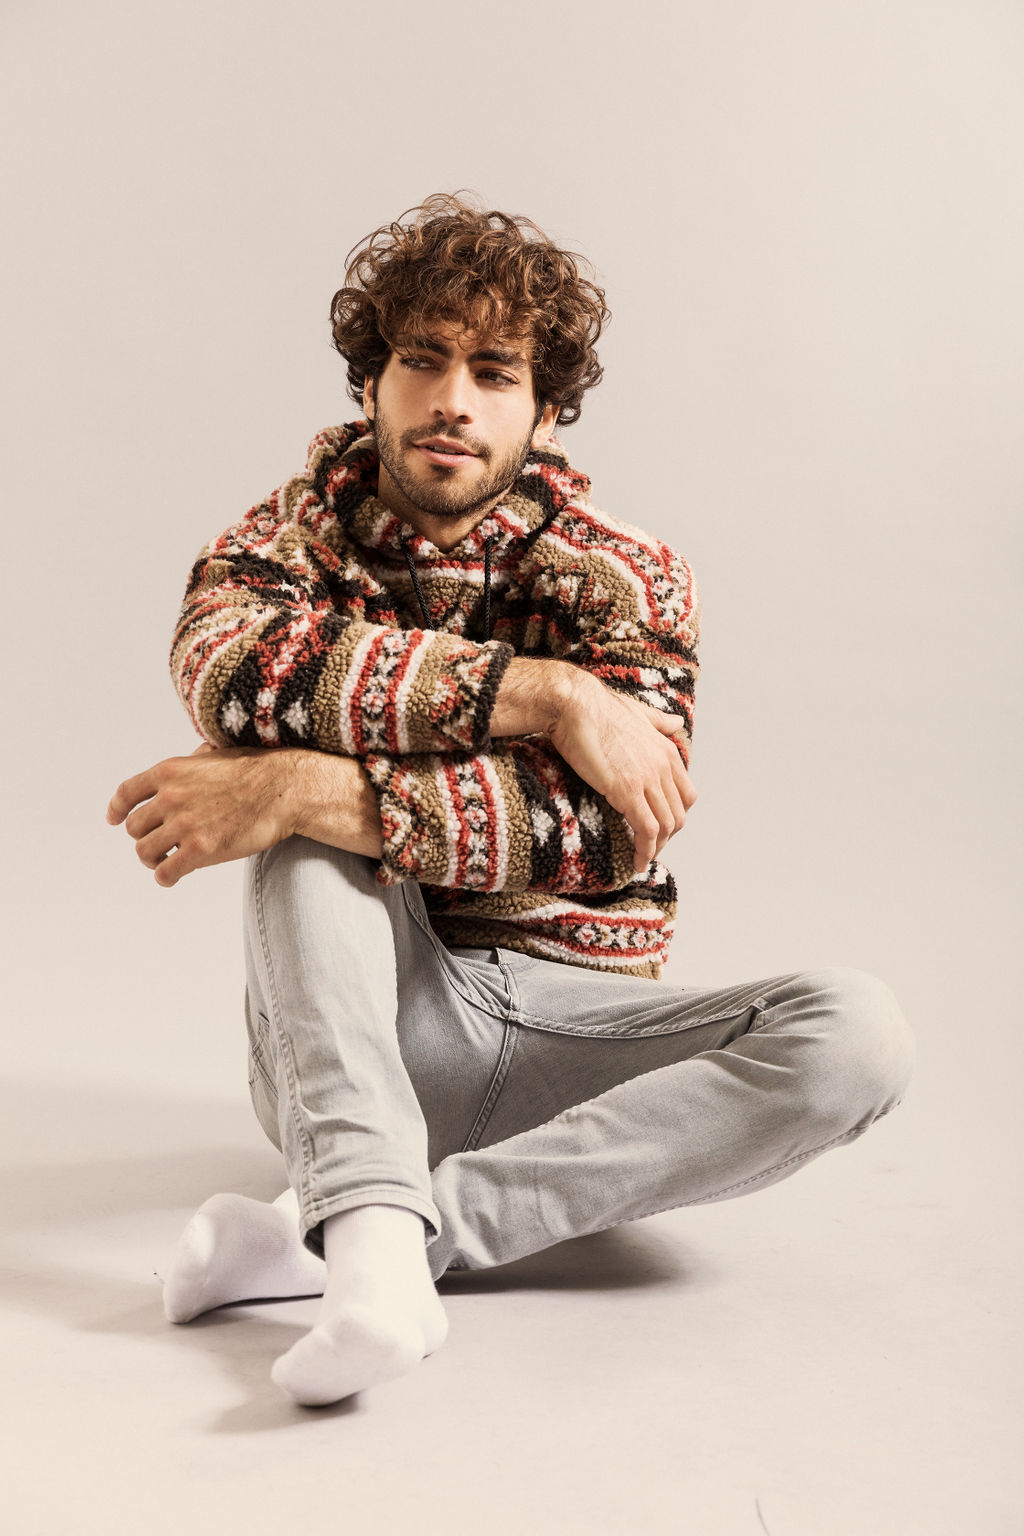 3 - Pedro Arnon in Urban Outfitters